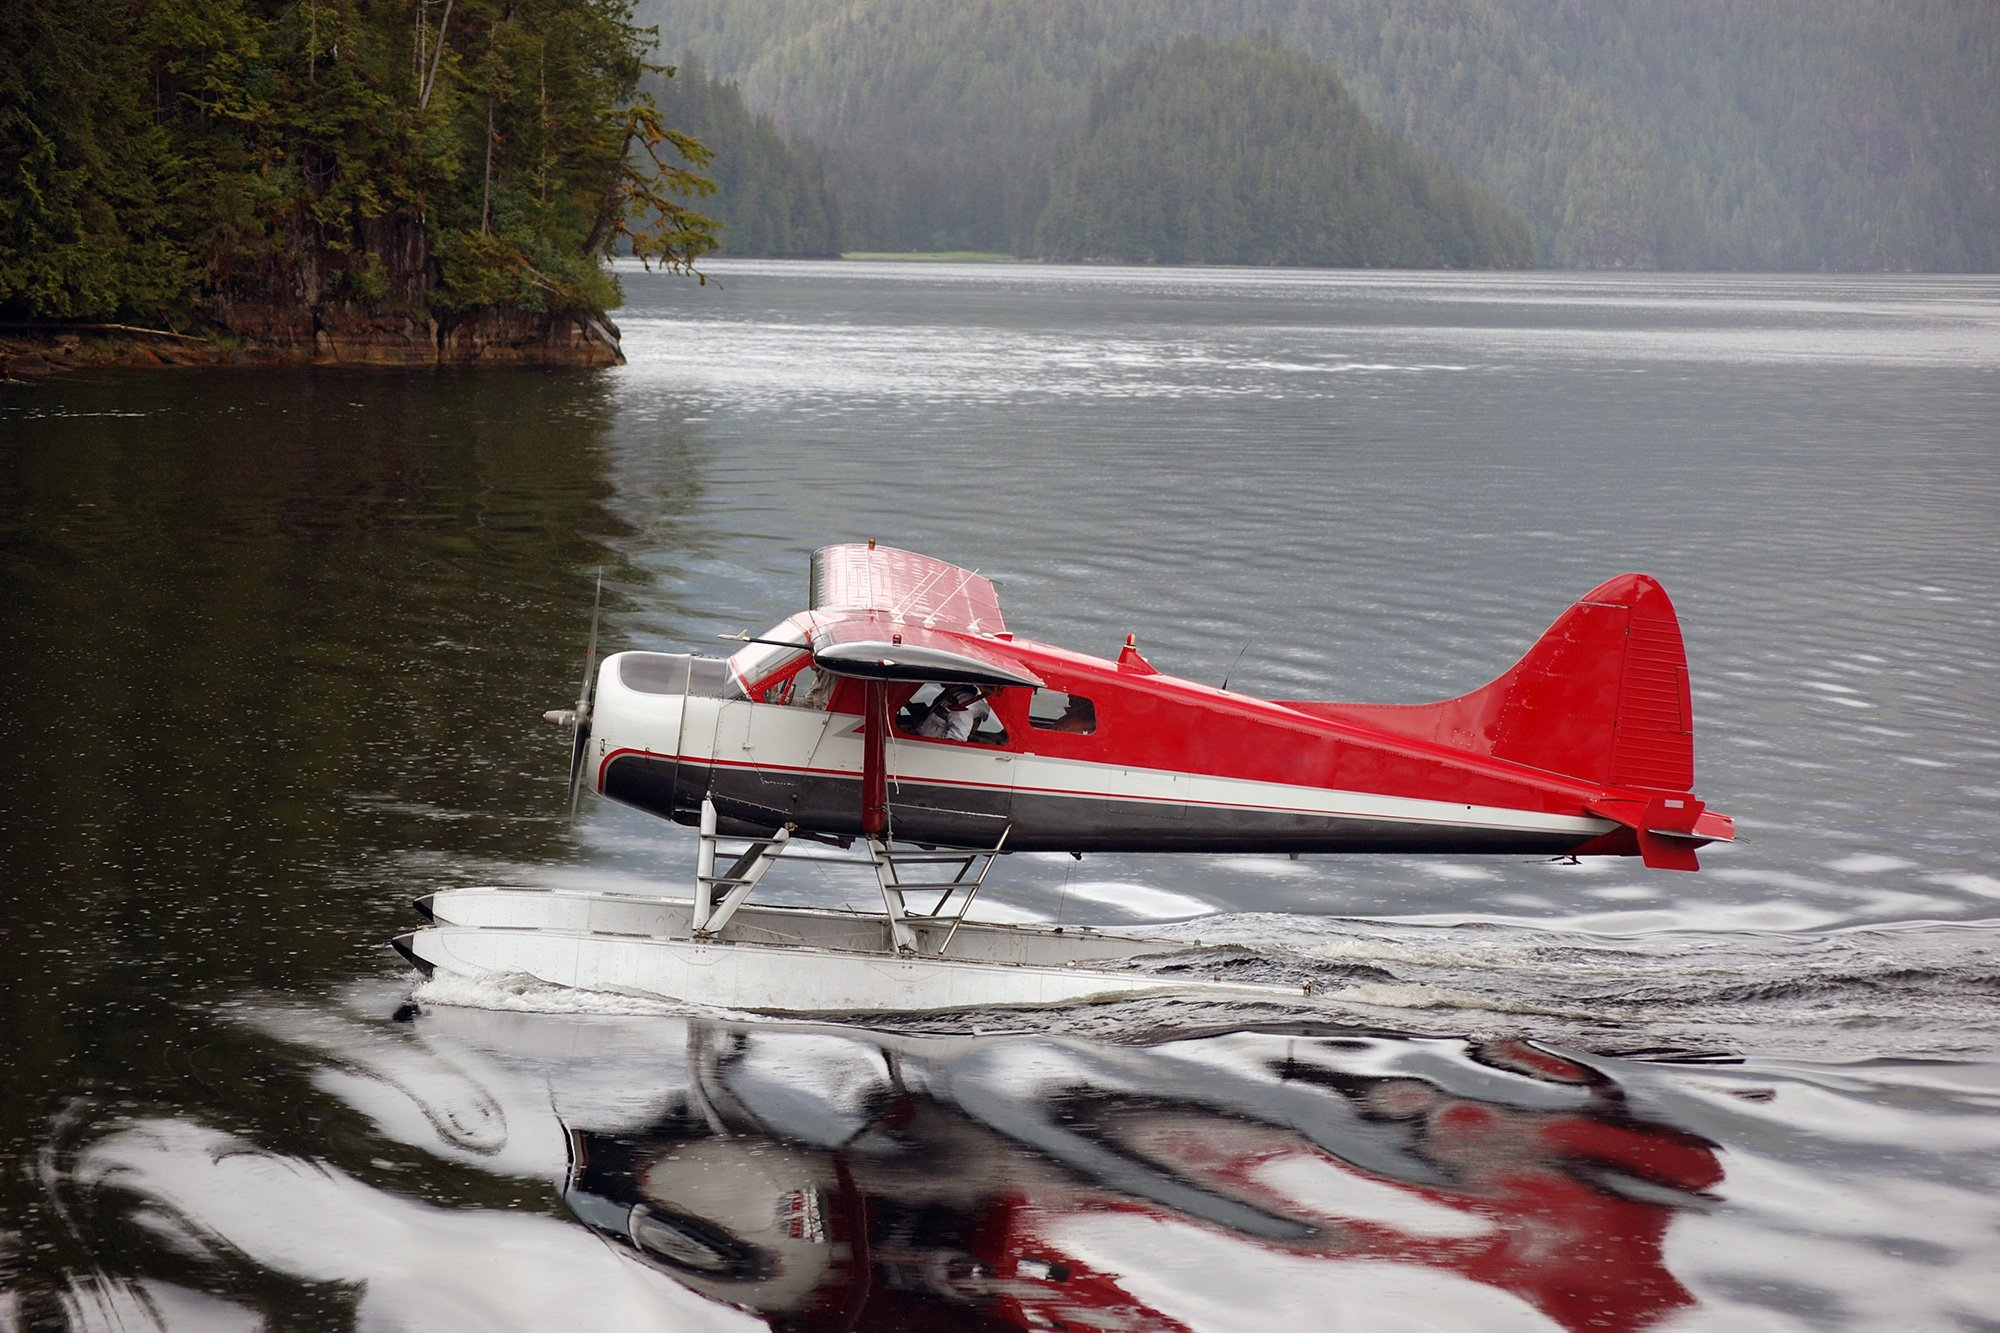 plane on water